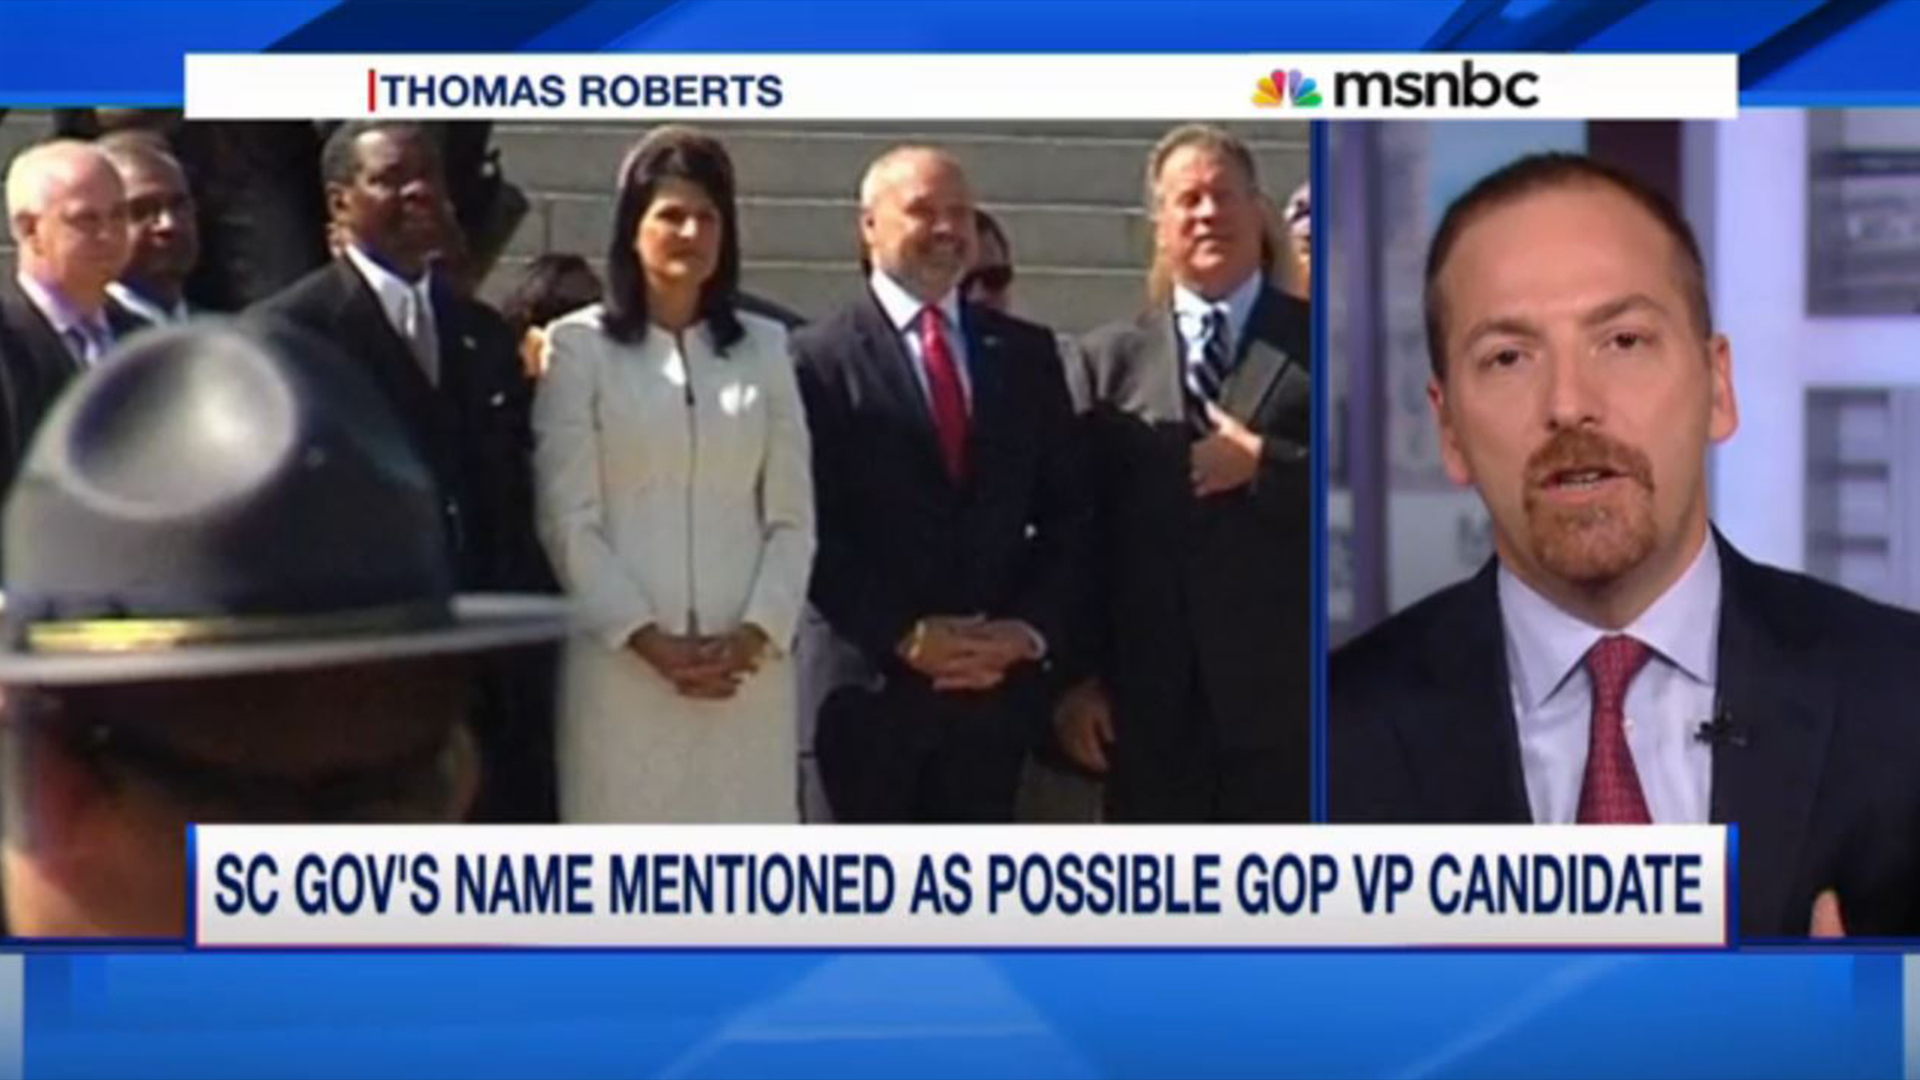 SC gov mentioned as possible GOP VP candidate